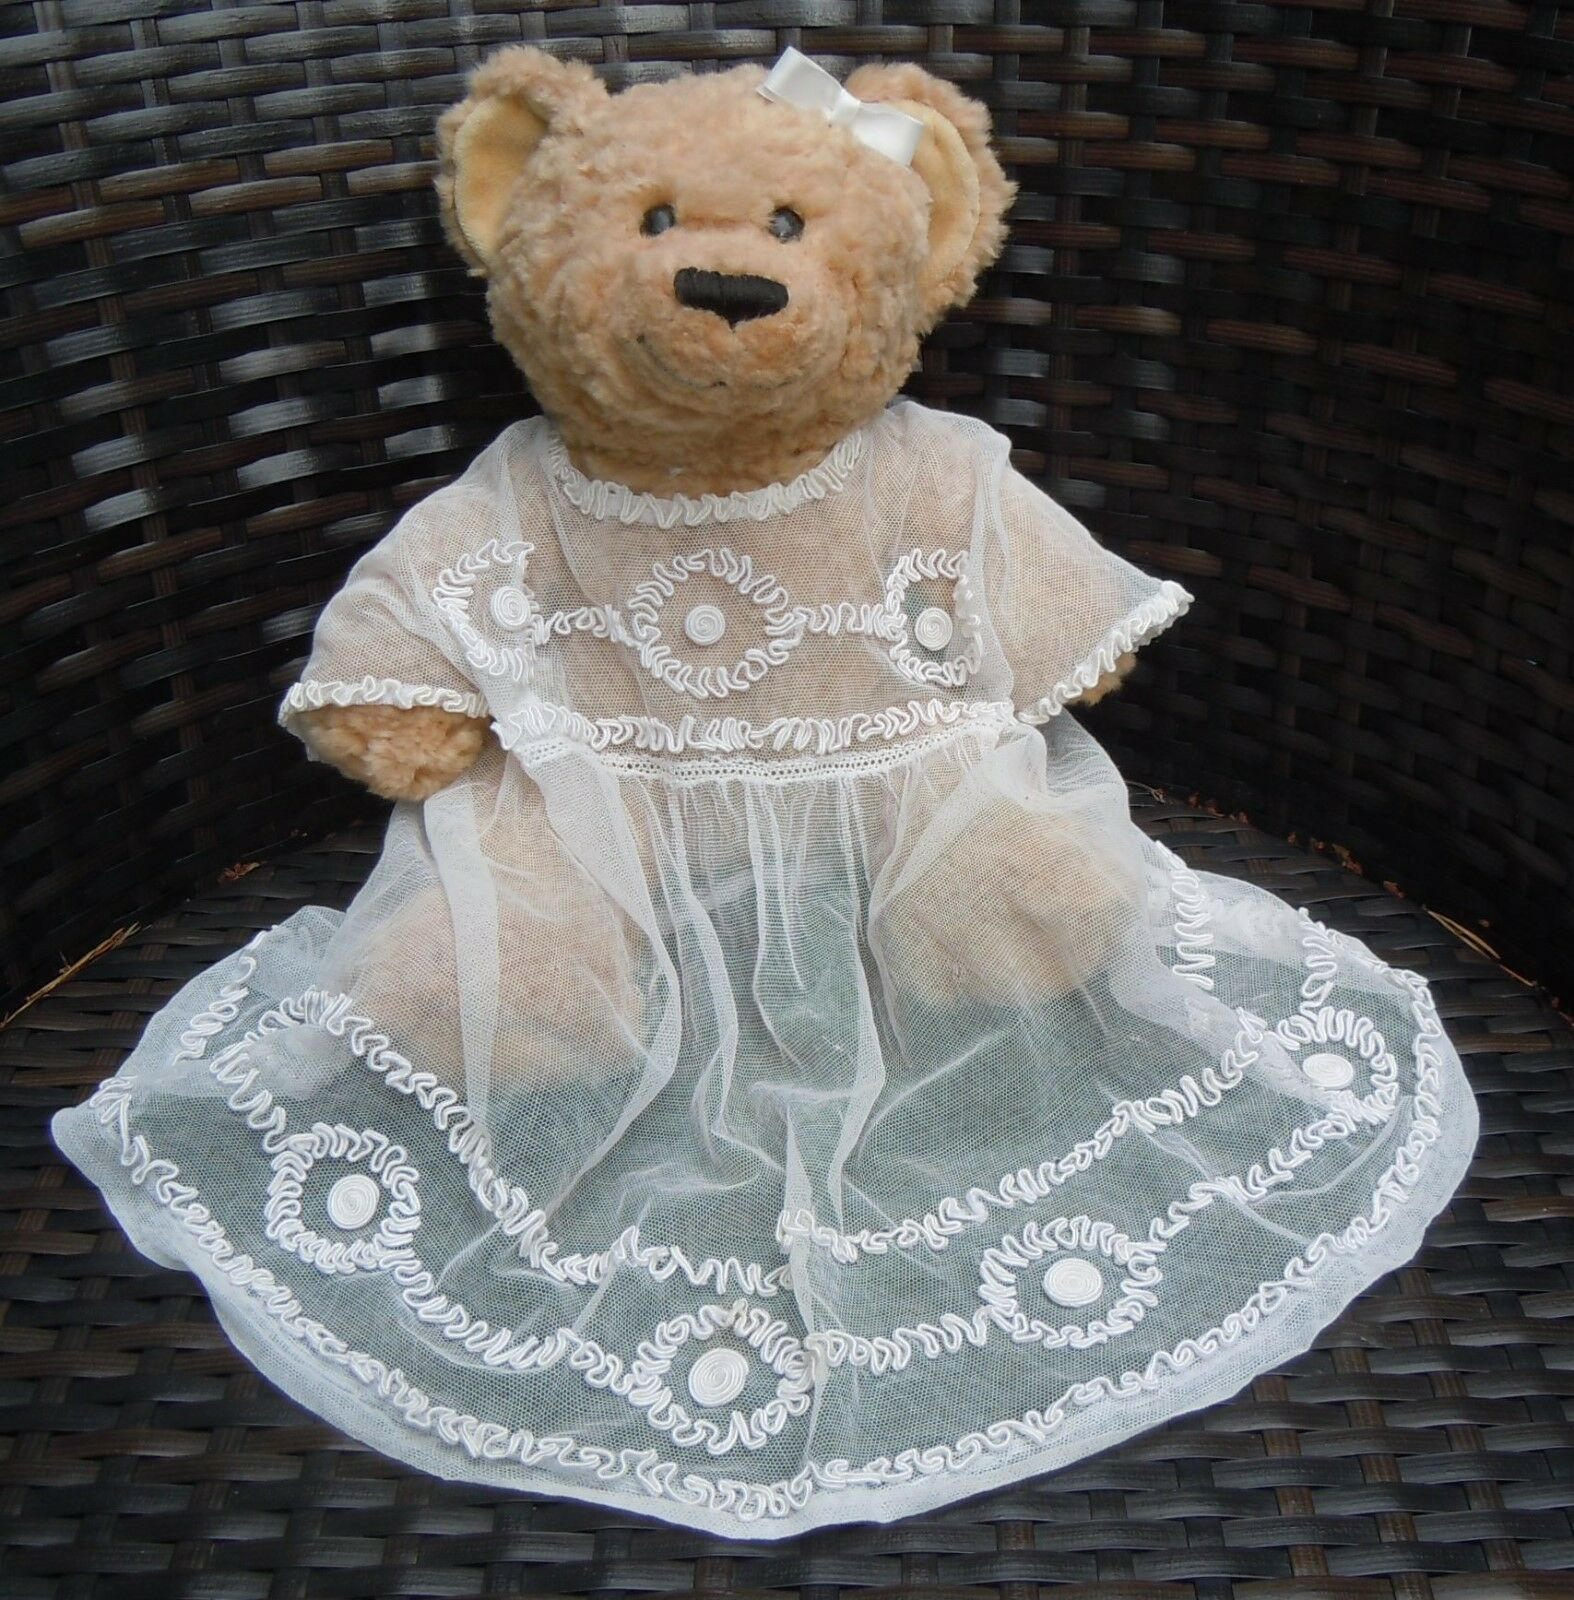 SOUTACHE Vintage Baby or Doll dress embellished with Soutache Braid Embroidery